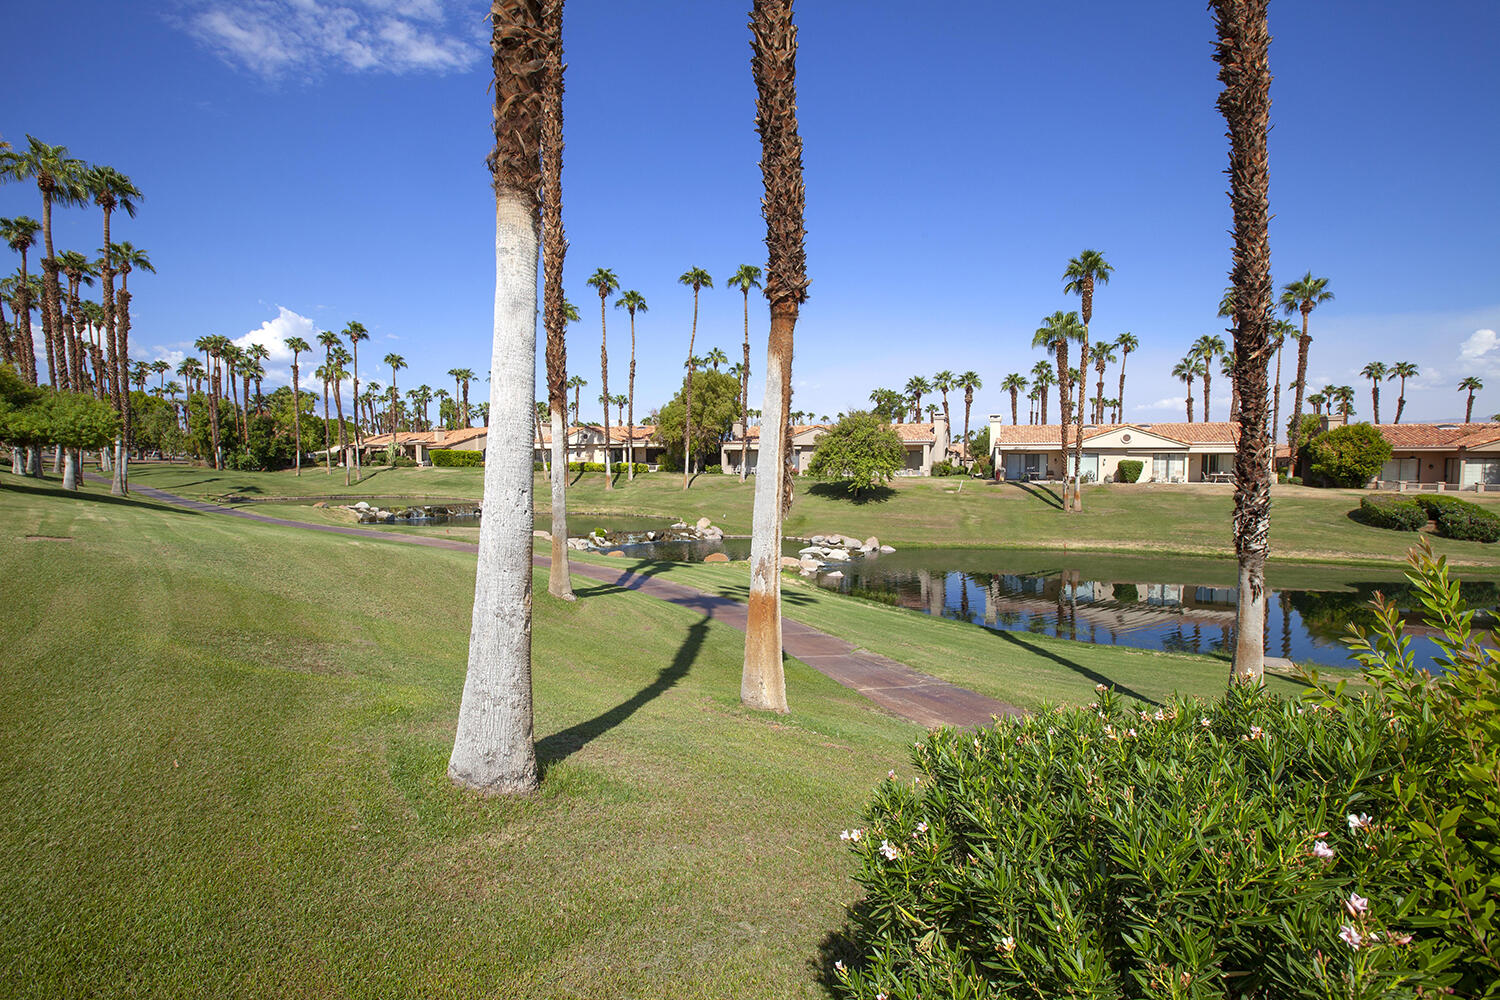 A 30k price drop?  Yes... who will be the lucky Buyer!  This spacious Willow floor plan is just what you've been waiting for!  It has the largest living space available in Palm Valley Country Club, all on a single level.  This lovely 3 bedroom/3.5 bath home has a formal dining room, large living room with fireplace and private courtyard off the master suite.  Amazing natural lighting with plantation shutters and high ceilings.  Delightful backyard with extended patio and BBQ island hooked up to gas line, perfect for outdoor dining with friends and family.  Attached golf cart garage with separate entrance and golf cart included.    This magnificent home sits slightly elevated with a gorgeous lake, mountain and golf course view! Perfect for your new desert home or weekend getaway. It is also a very short walking distance to the club house and all the amenities offered at Palm Valley Country Club. Not only that, your community swimming pool is right across the street. The previous owners took great pride in this home.   Palm Valley Country Club has a 100,000+ sq. ft. clubhouse with a spa, state of the art fitness center, year round dining options, a bar, tennis and pickleball courts, two Ted Robinson designed championship golf courses, 46 swimming pools and spas, an enormous clubhouse with restaurants and a bar, a fitness center and so much more. Come check out one of the premier country clubs in the valley, and make this beautiful property your next home!